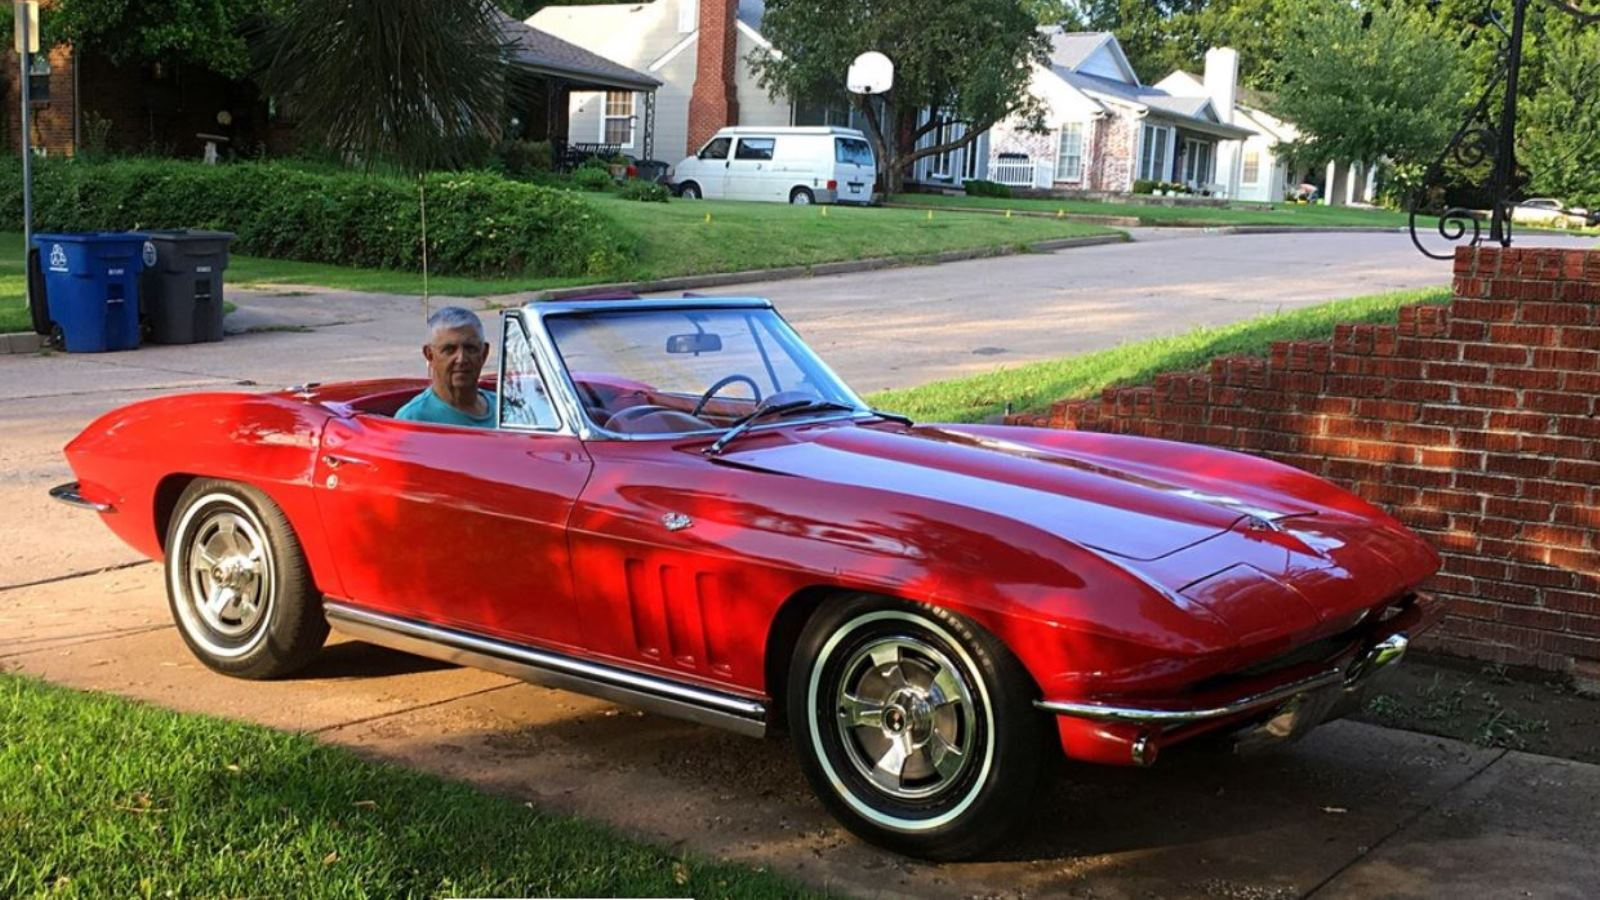 George Brock is Reunited with his 65 Corvette